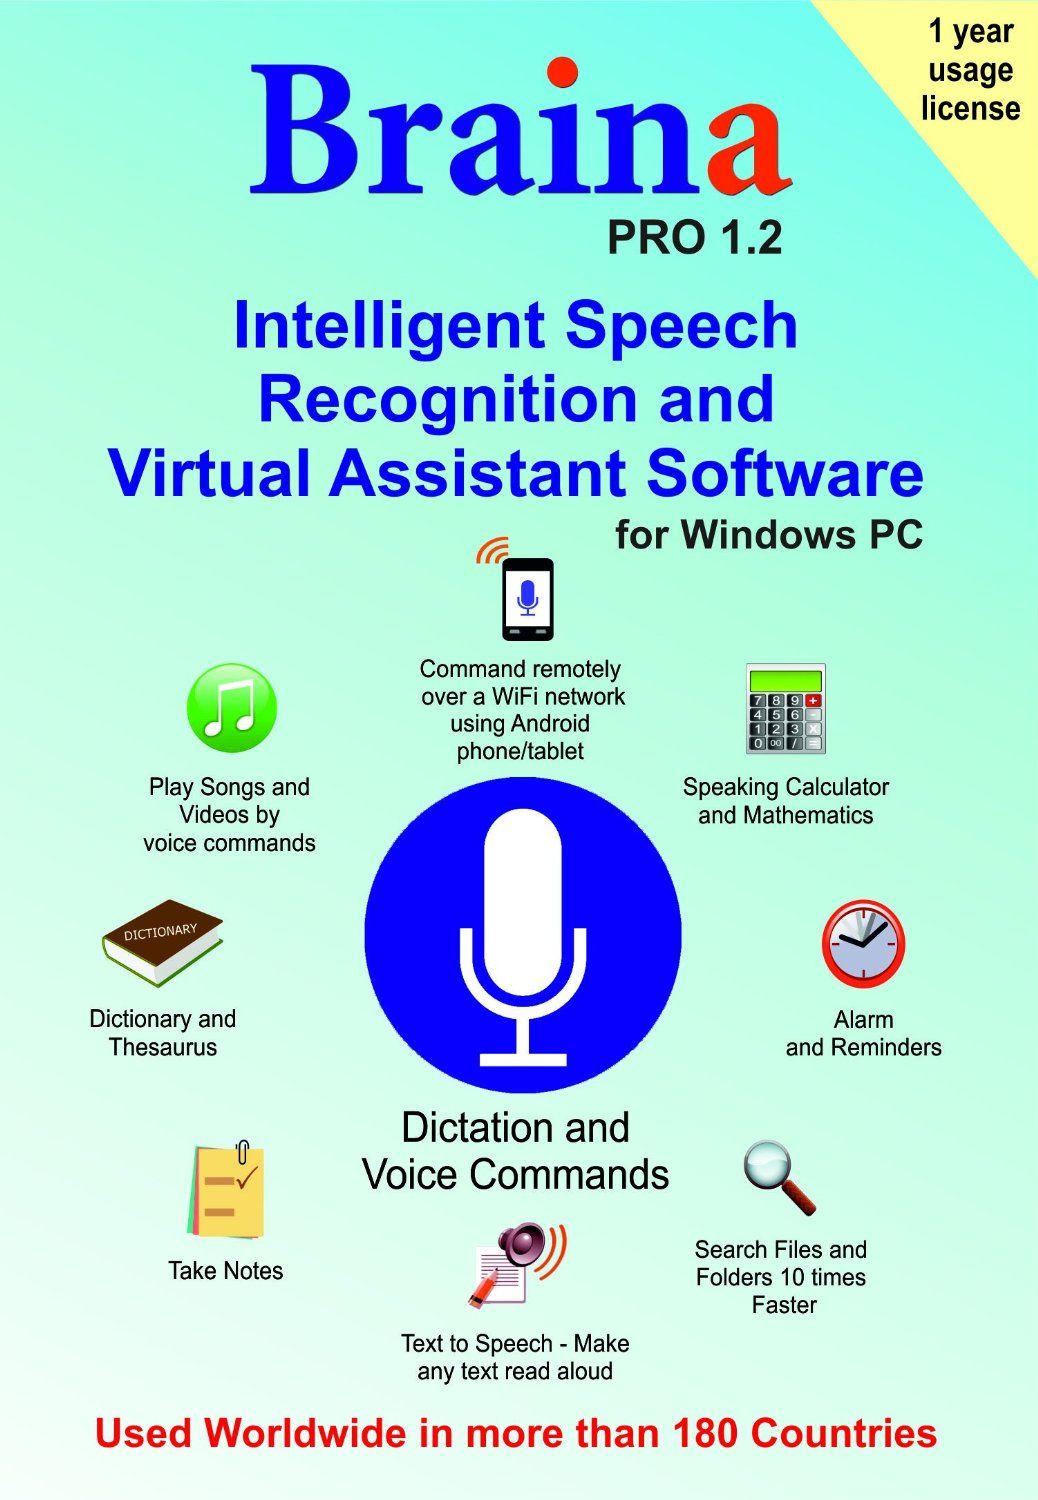 Software (With images) Software, Speech recognition